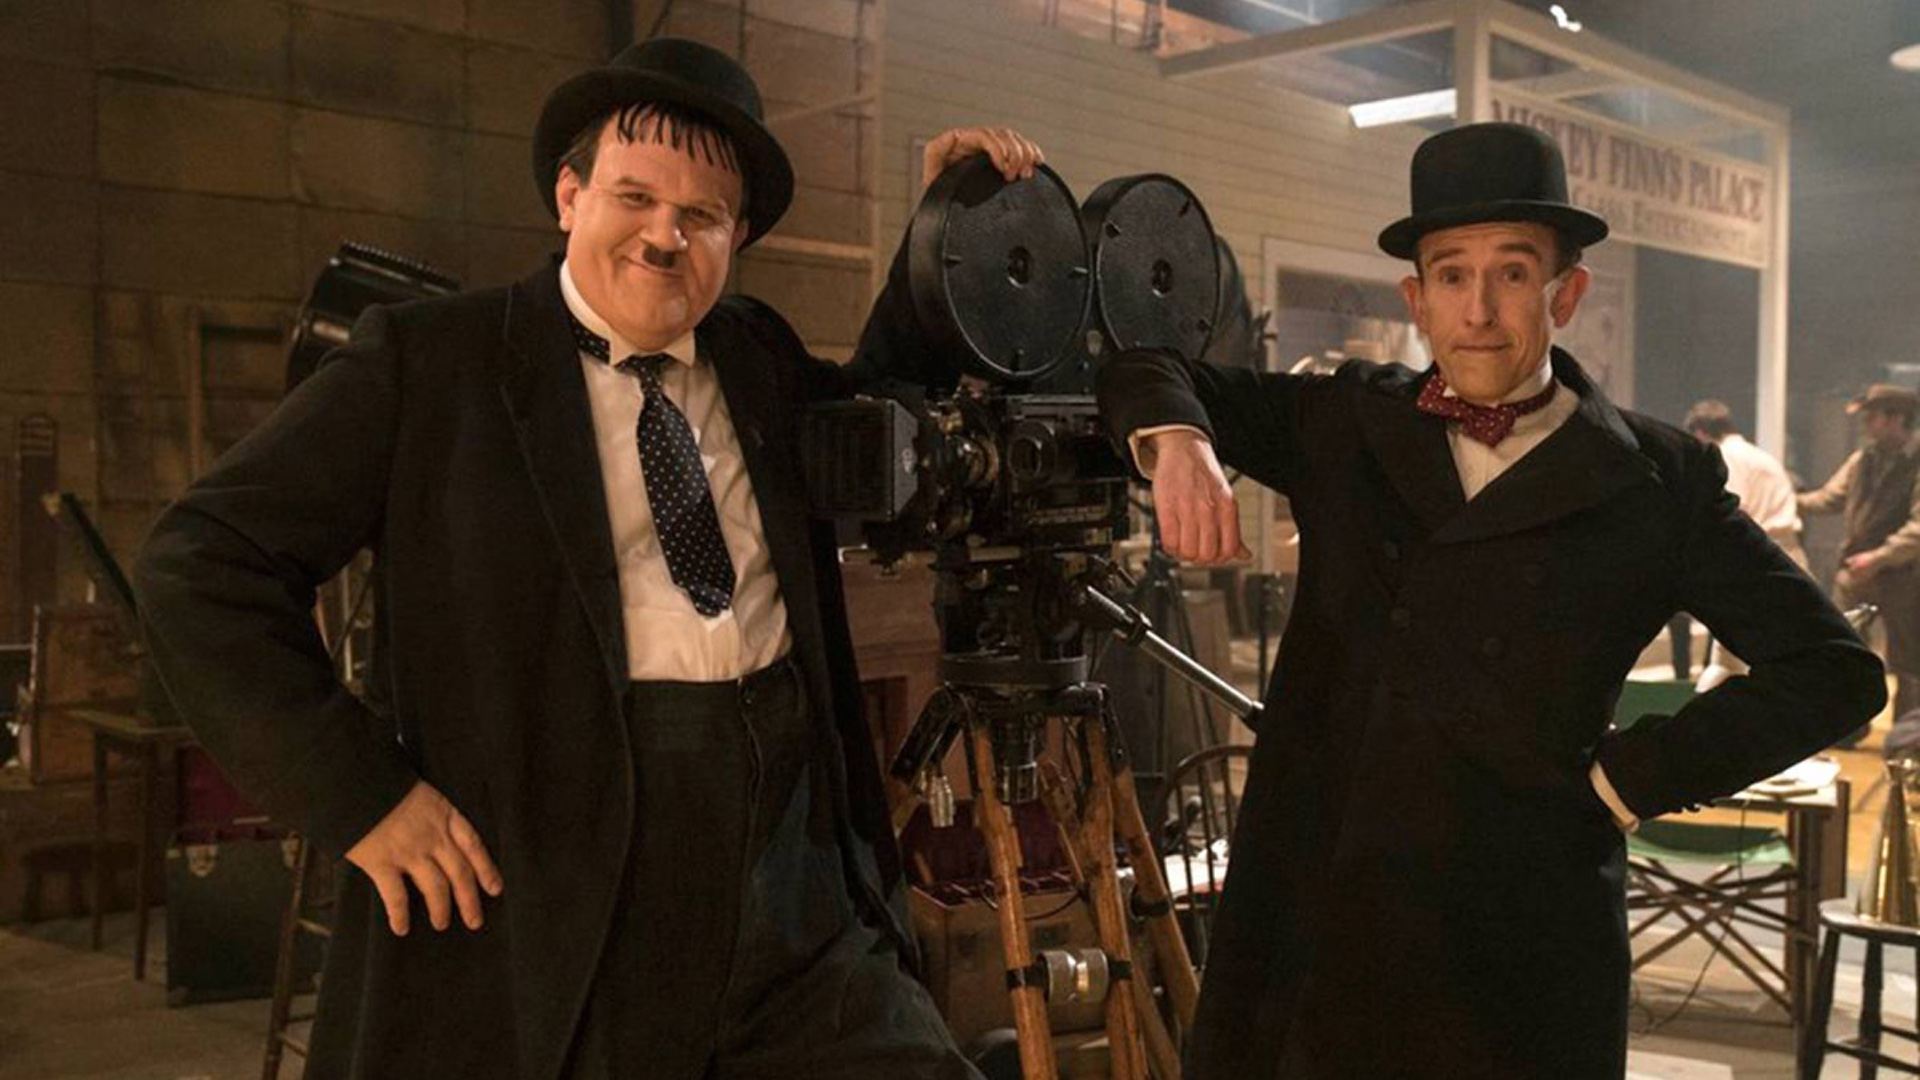 first-look-at-john-c-reilly-and-steve-coogans-laurel-and-hardy-biopic-stan-ollie-social.jpg